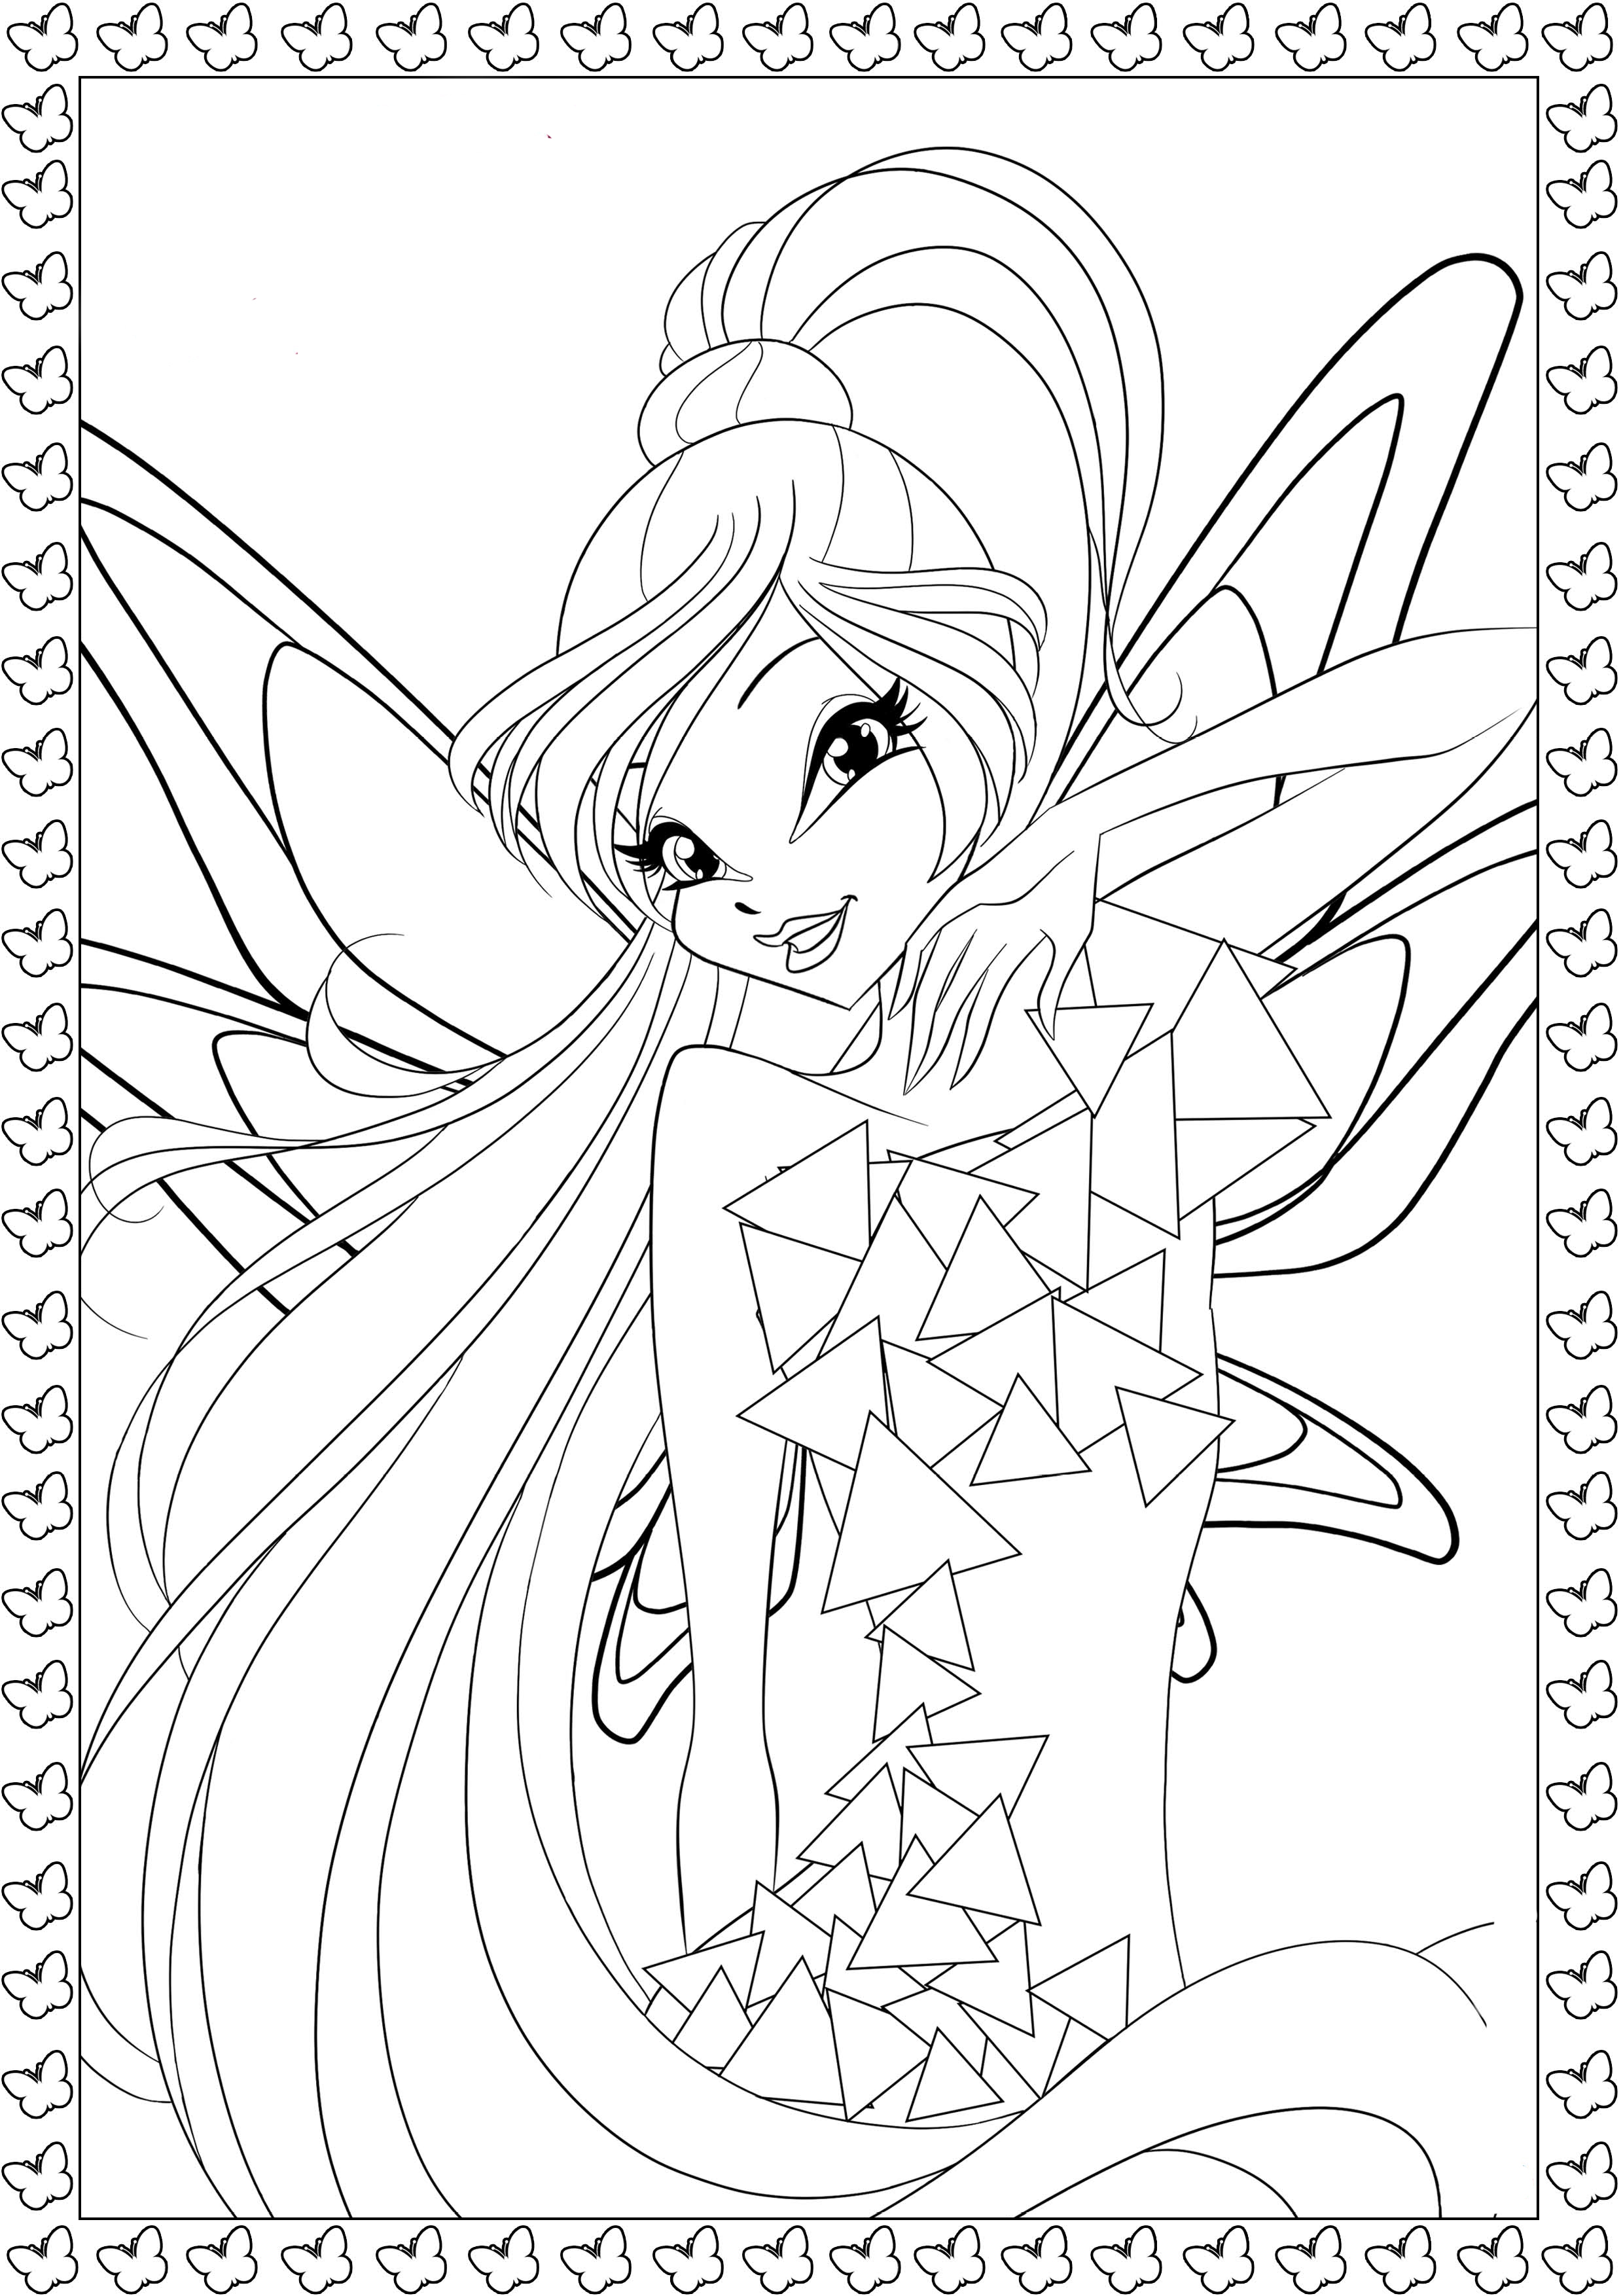 winx coloring pages winx harmonix coloring pages to download and print for free coloring winx pages